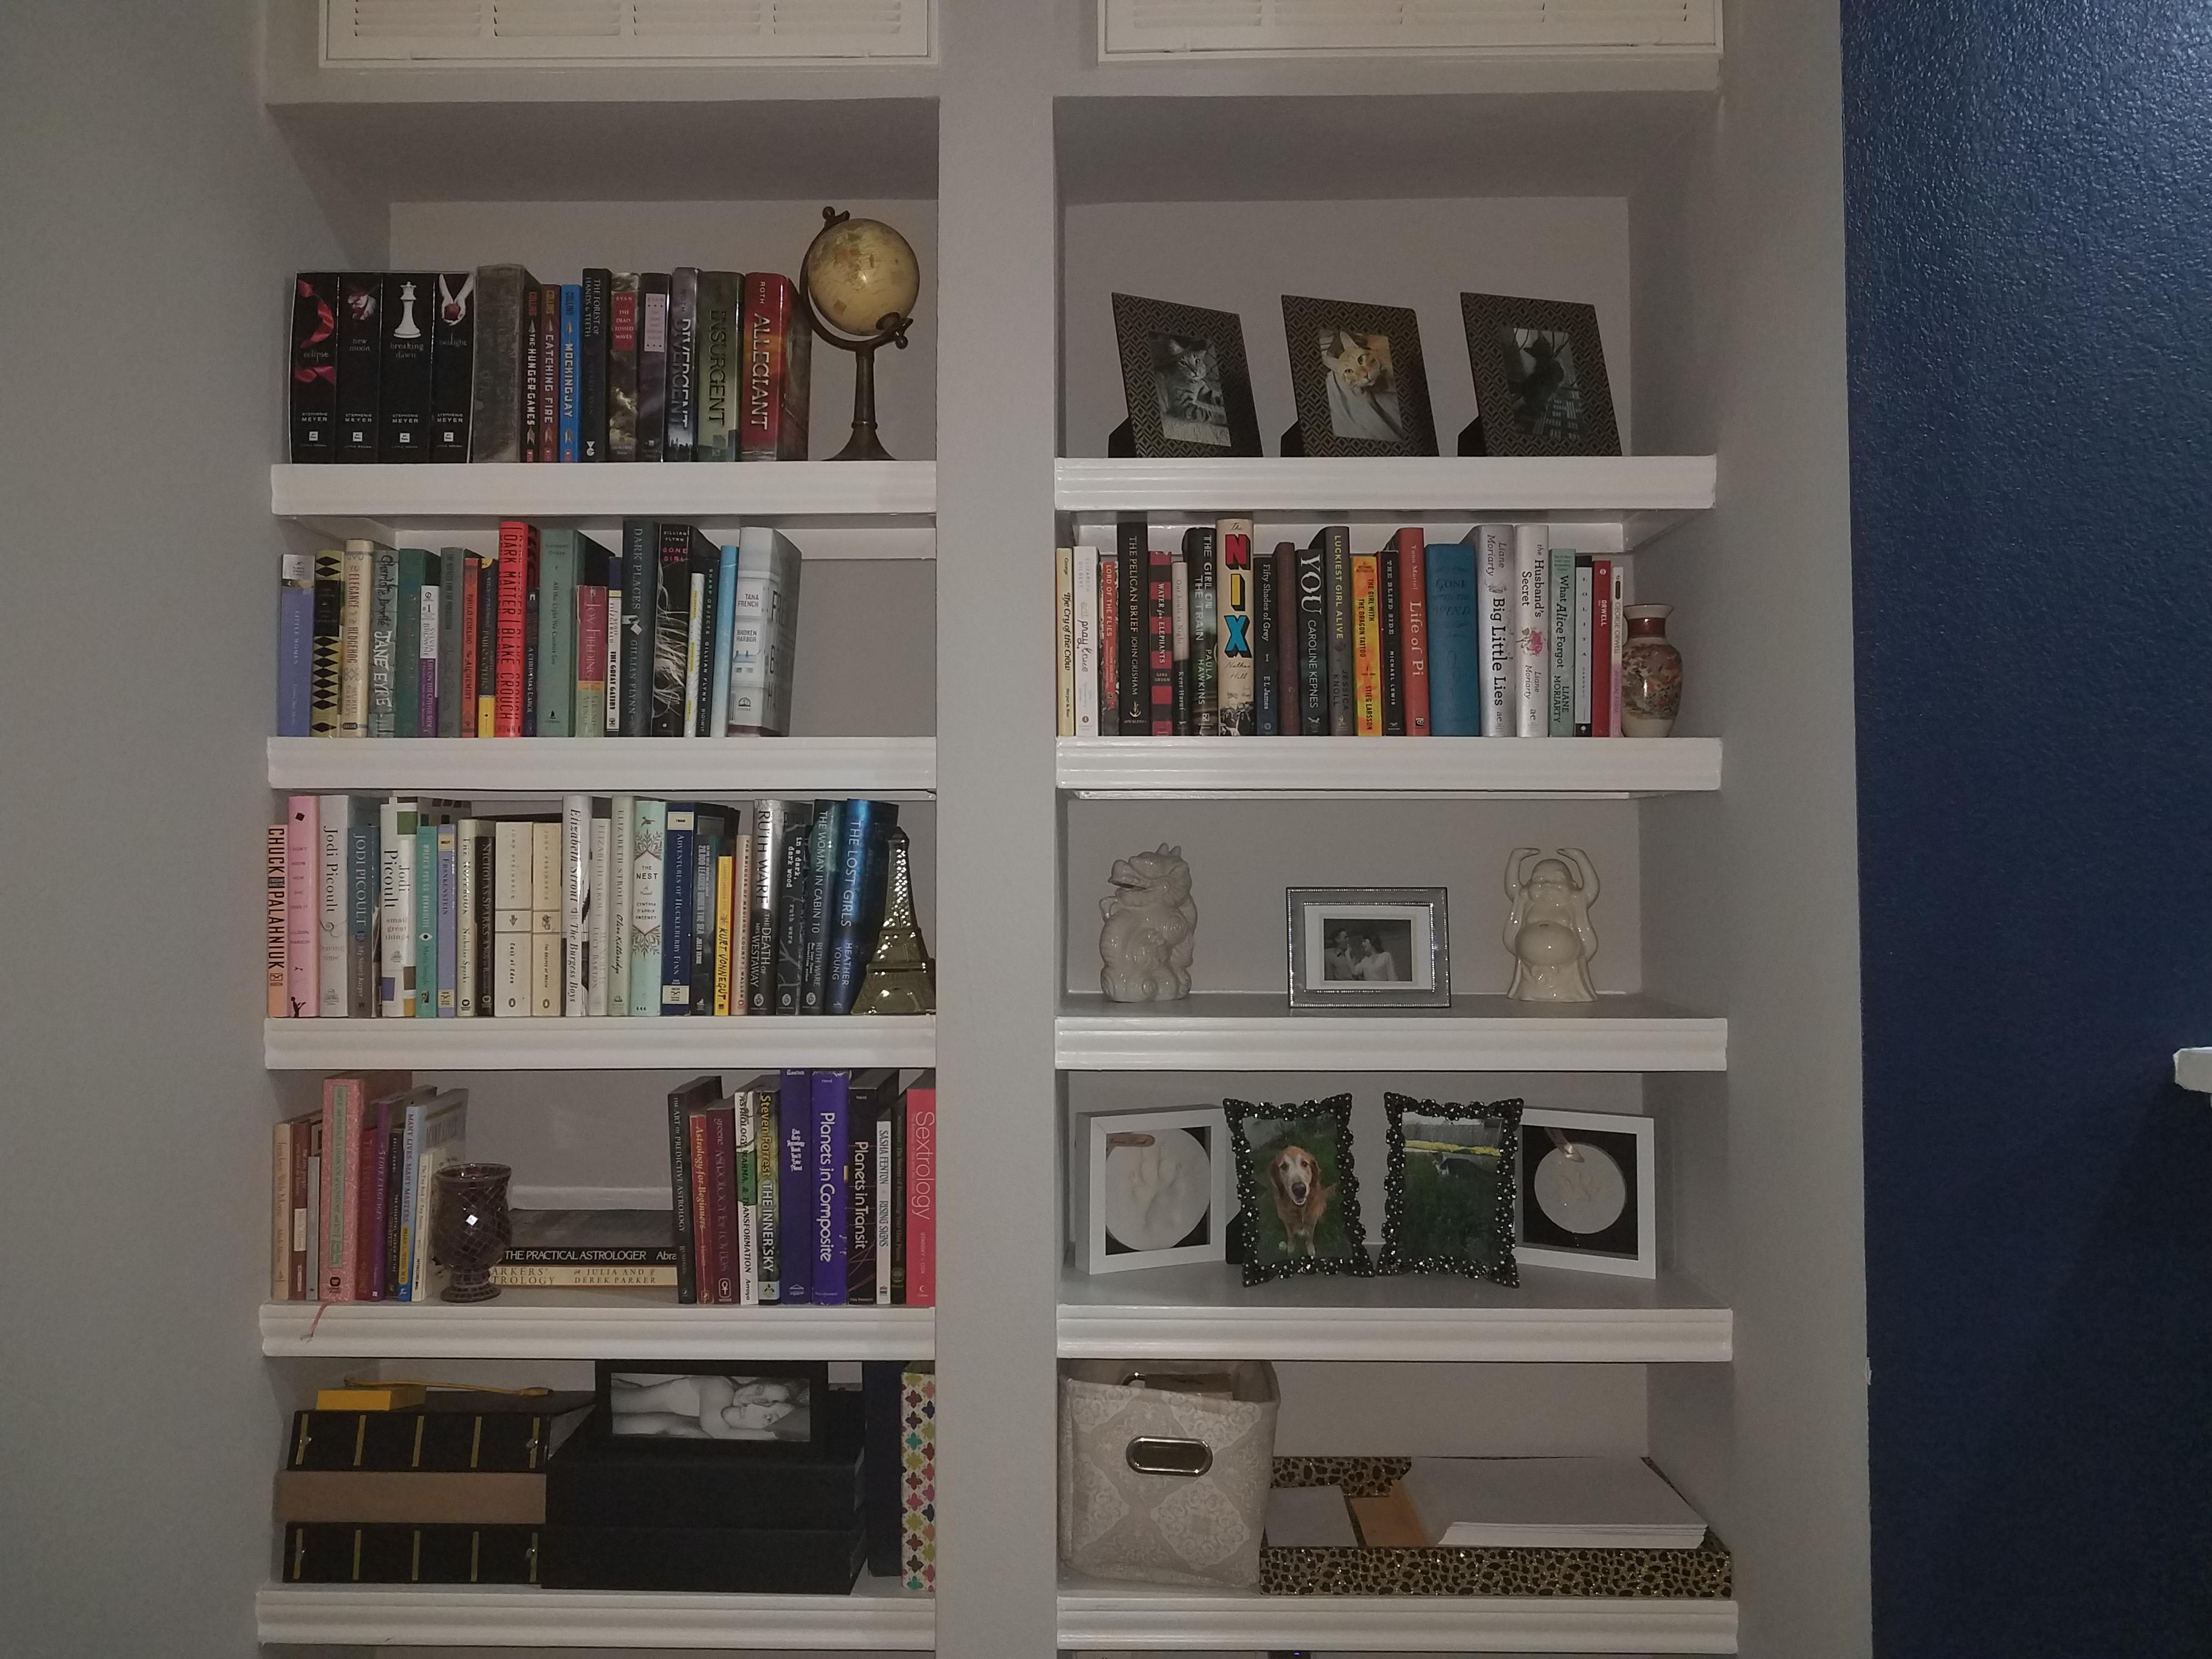 Not Super Impressive Compared To Other Shelves Posted On